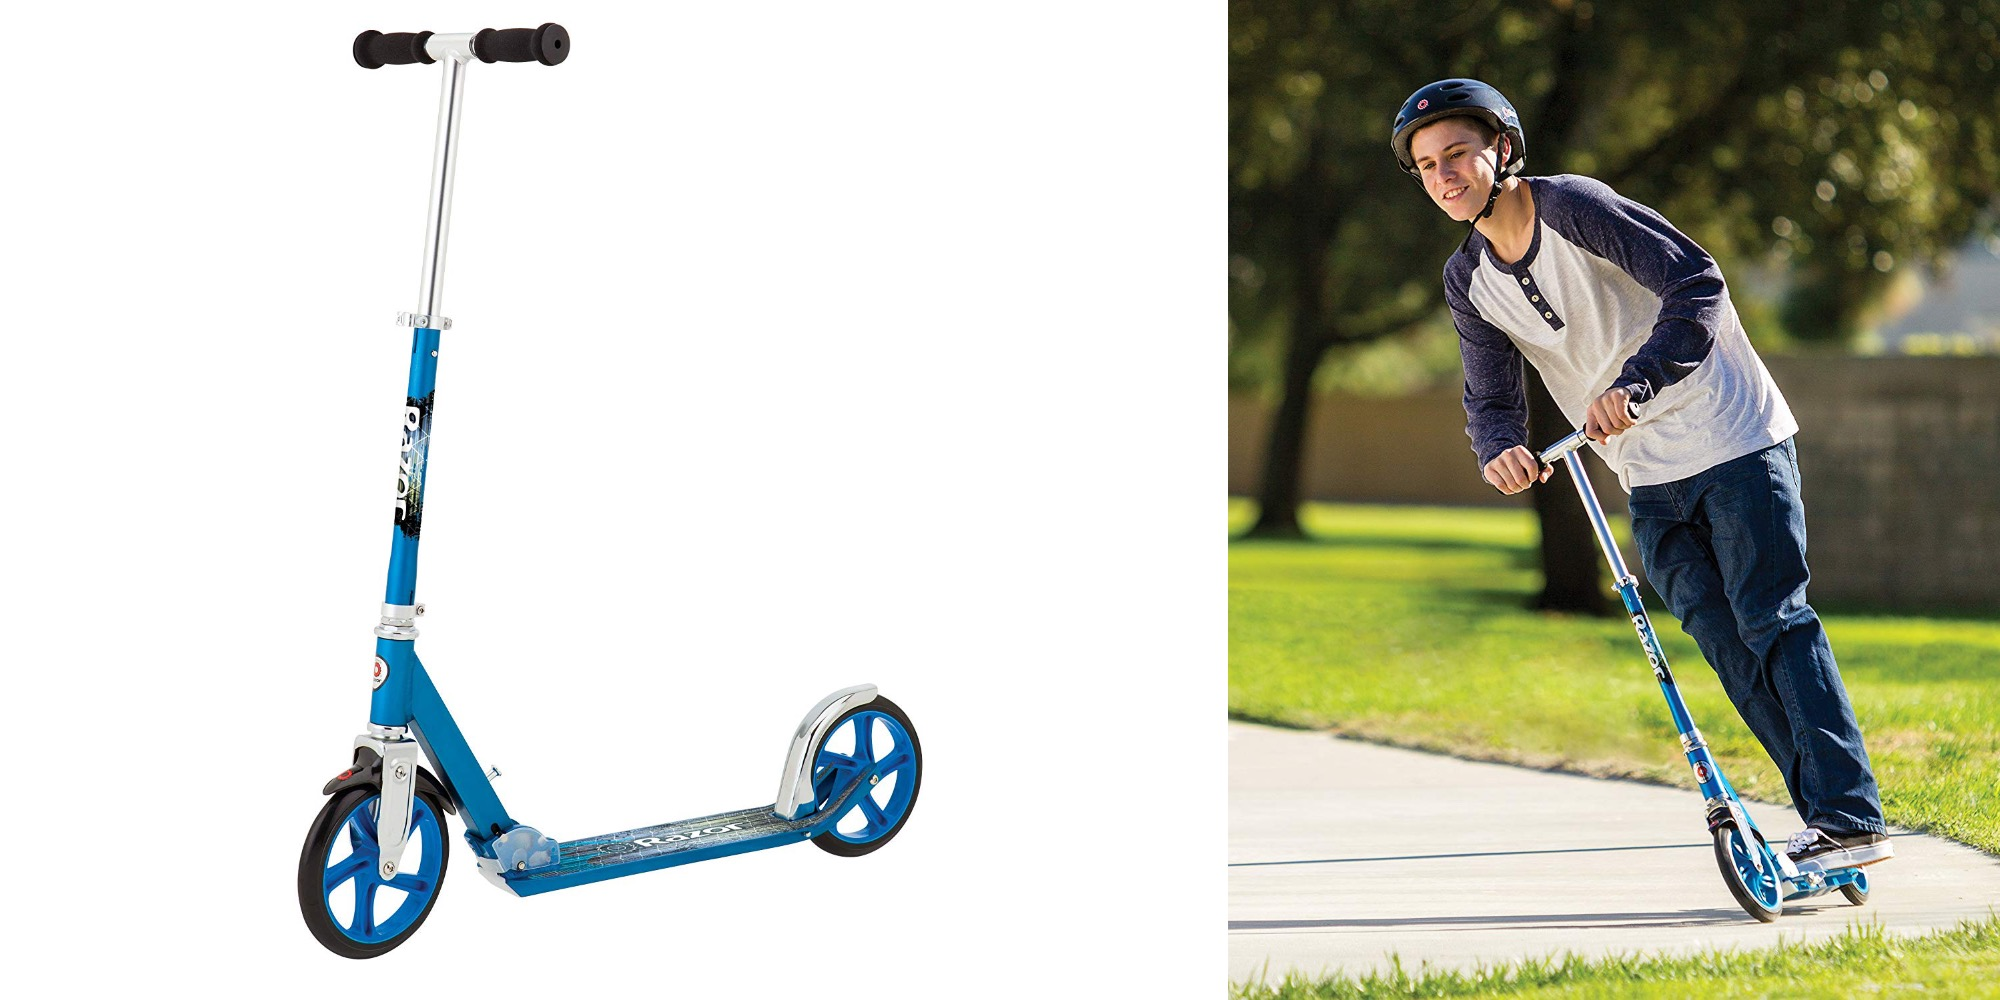 Zip around this summer on Razor's highly-rated A5 Lux Scooter for $54 (Reg. $80)